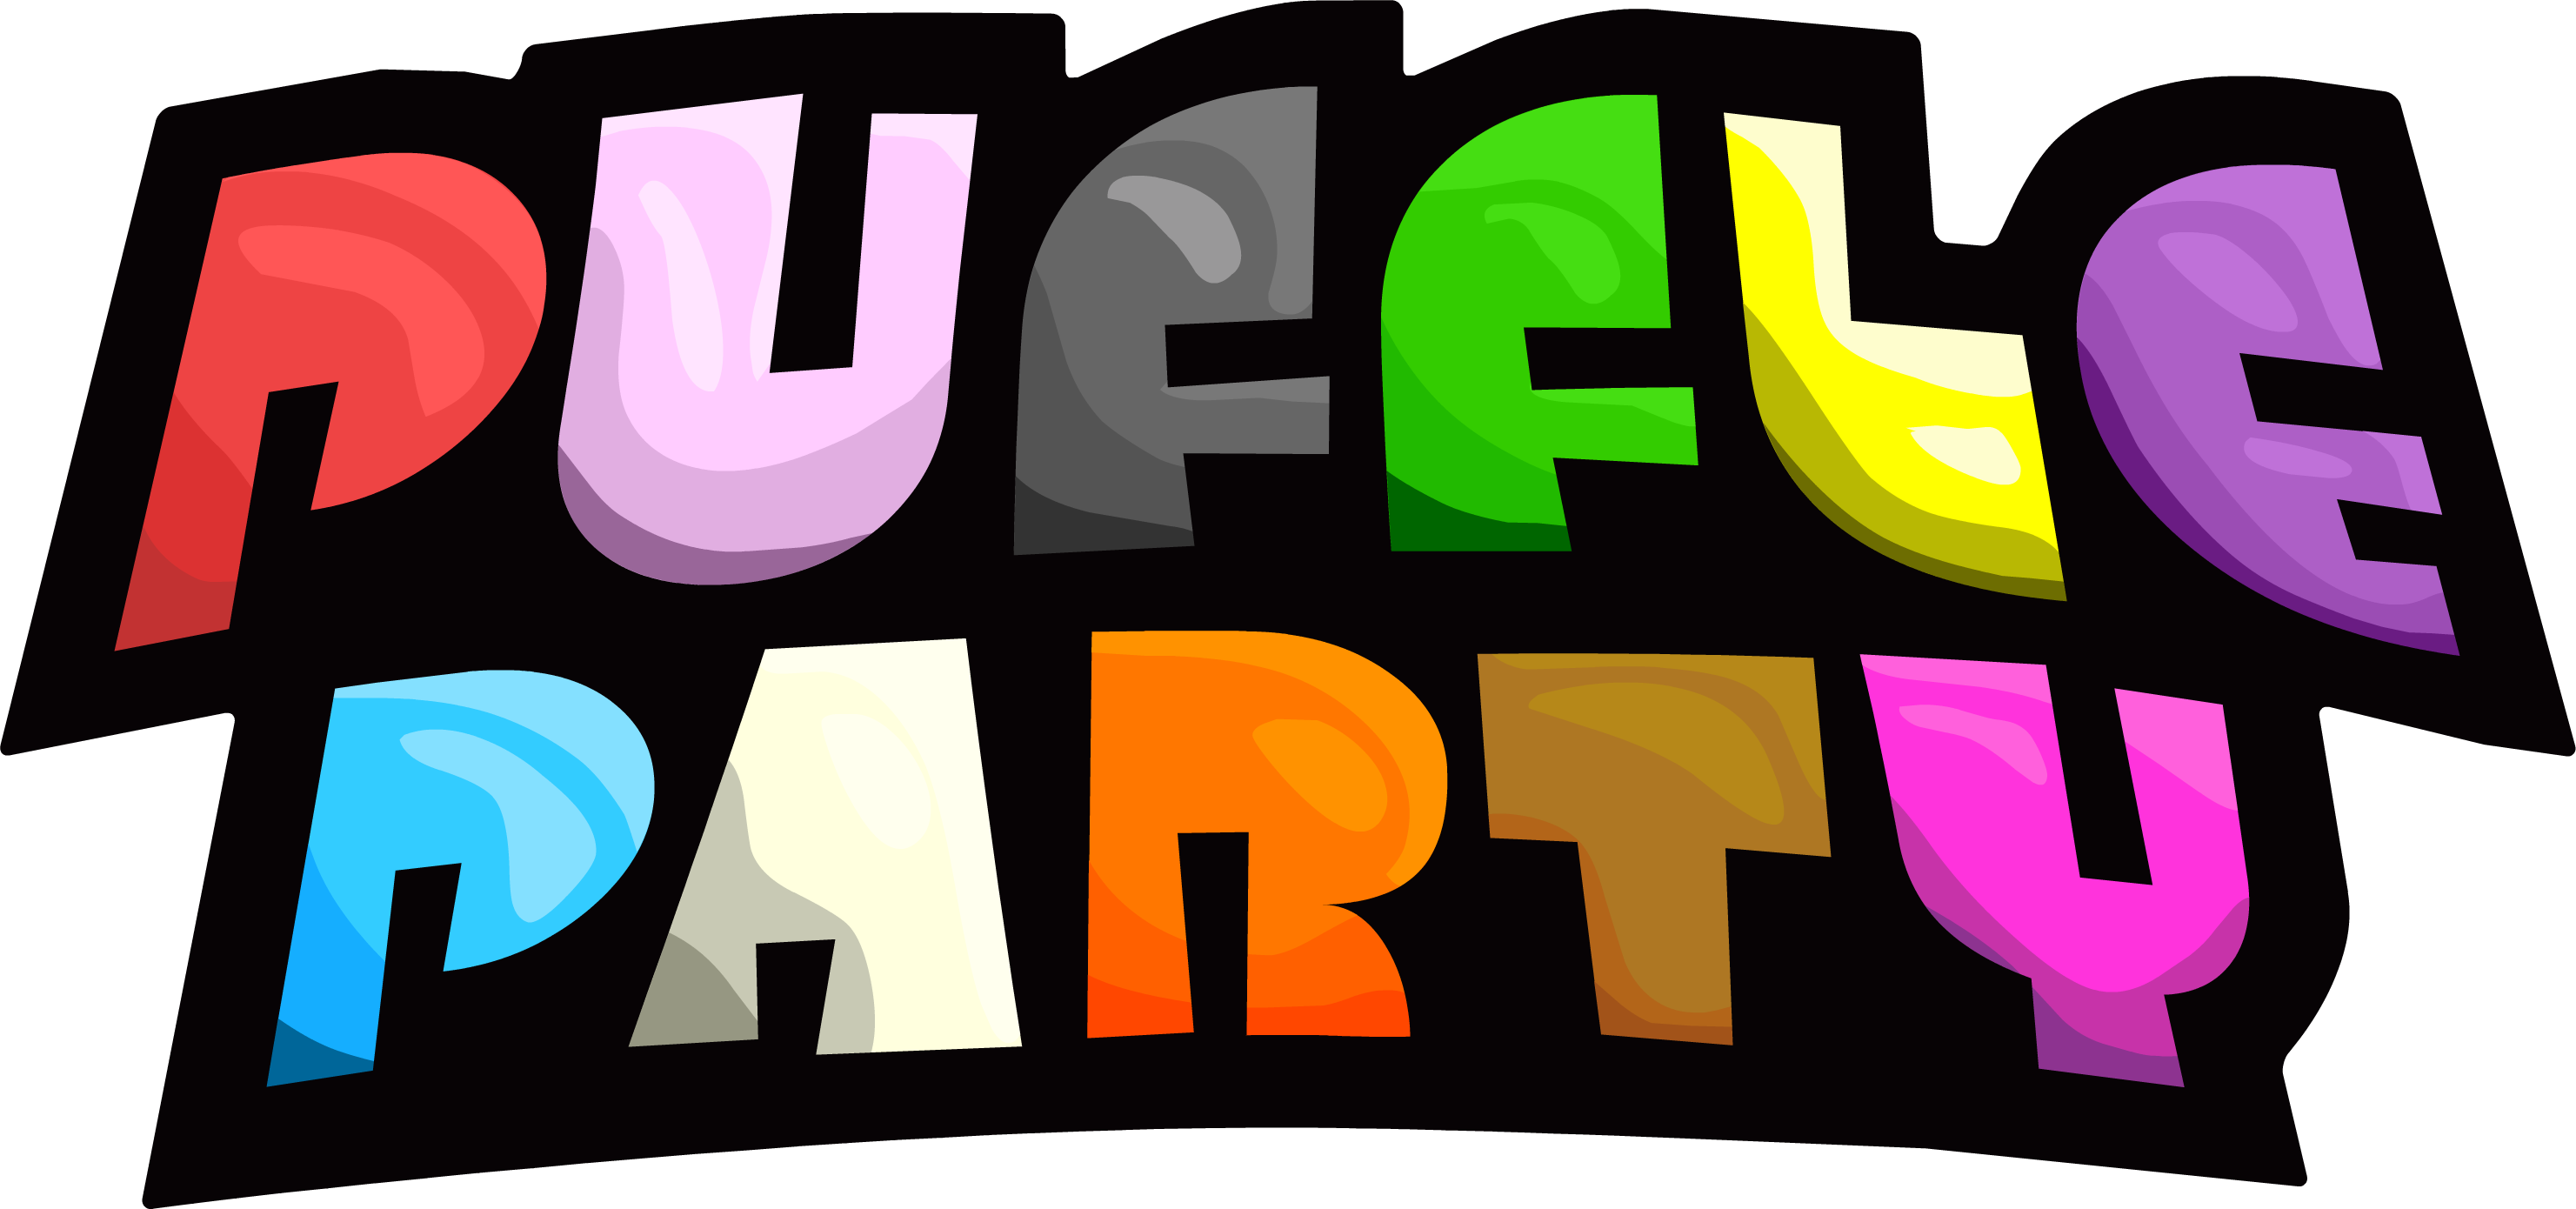 List of parties and. April Fools 2010 Logo banner freeuse library